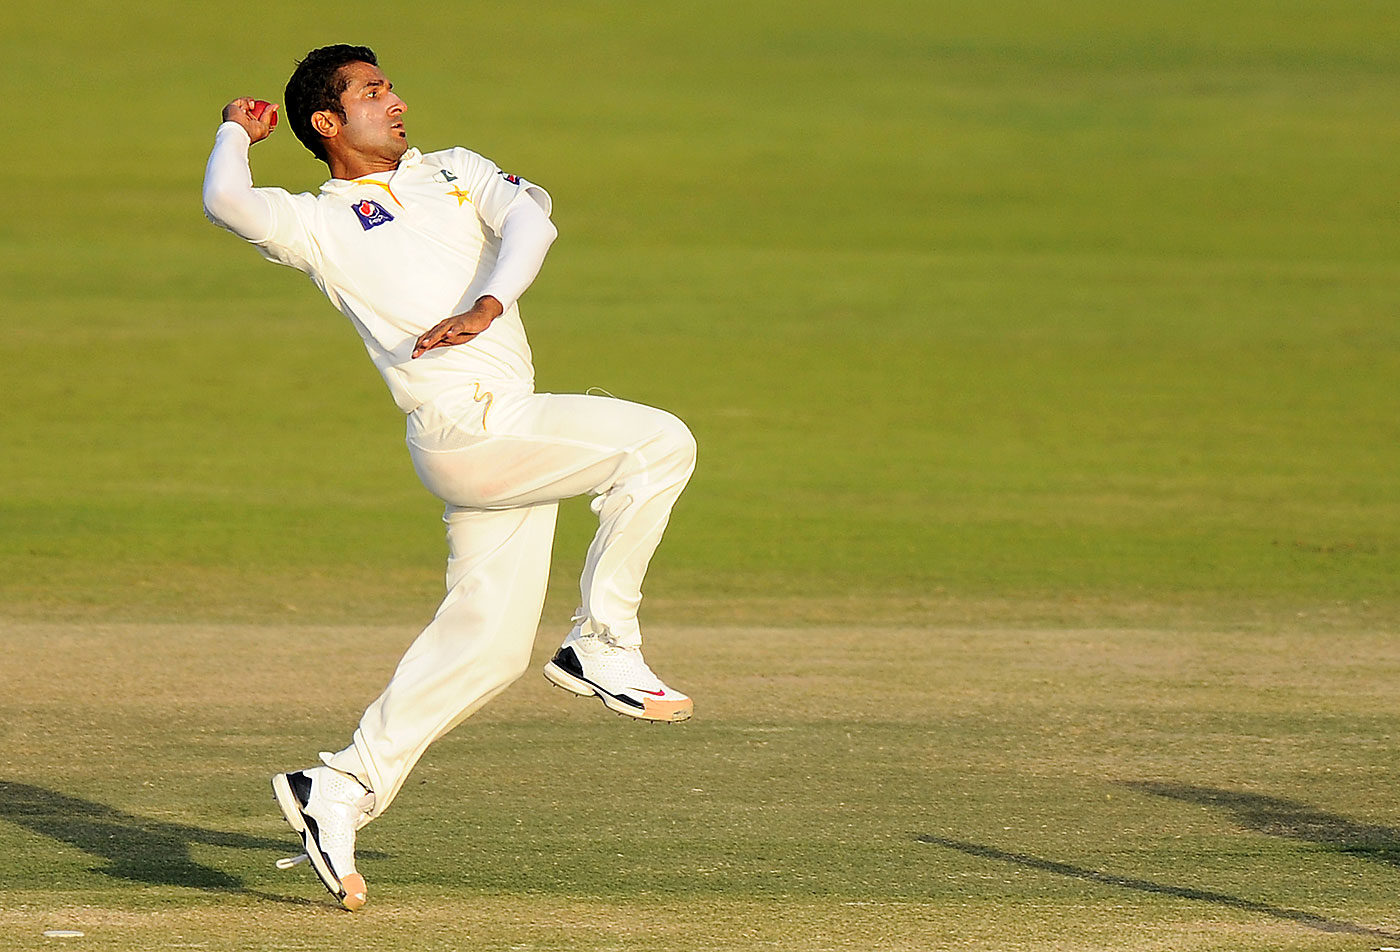 Bilawal Bhatti impresses with 6/38 in the Quaid-e-Azam Trophy